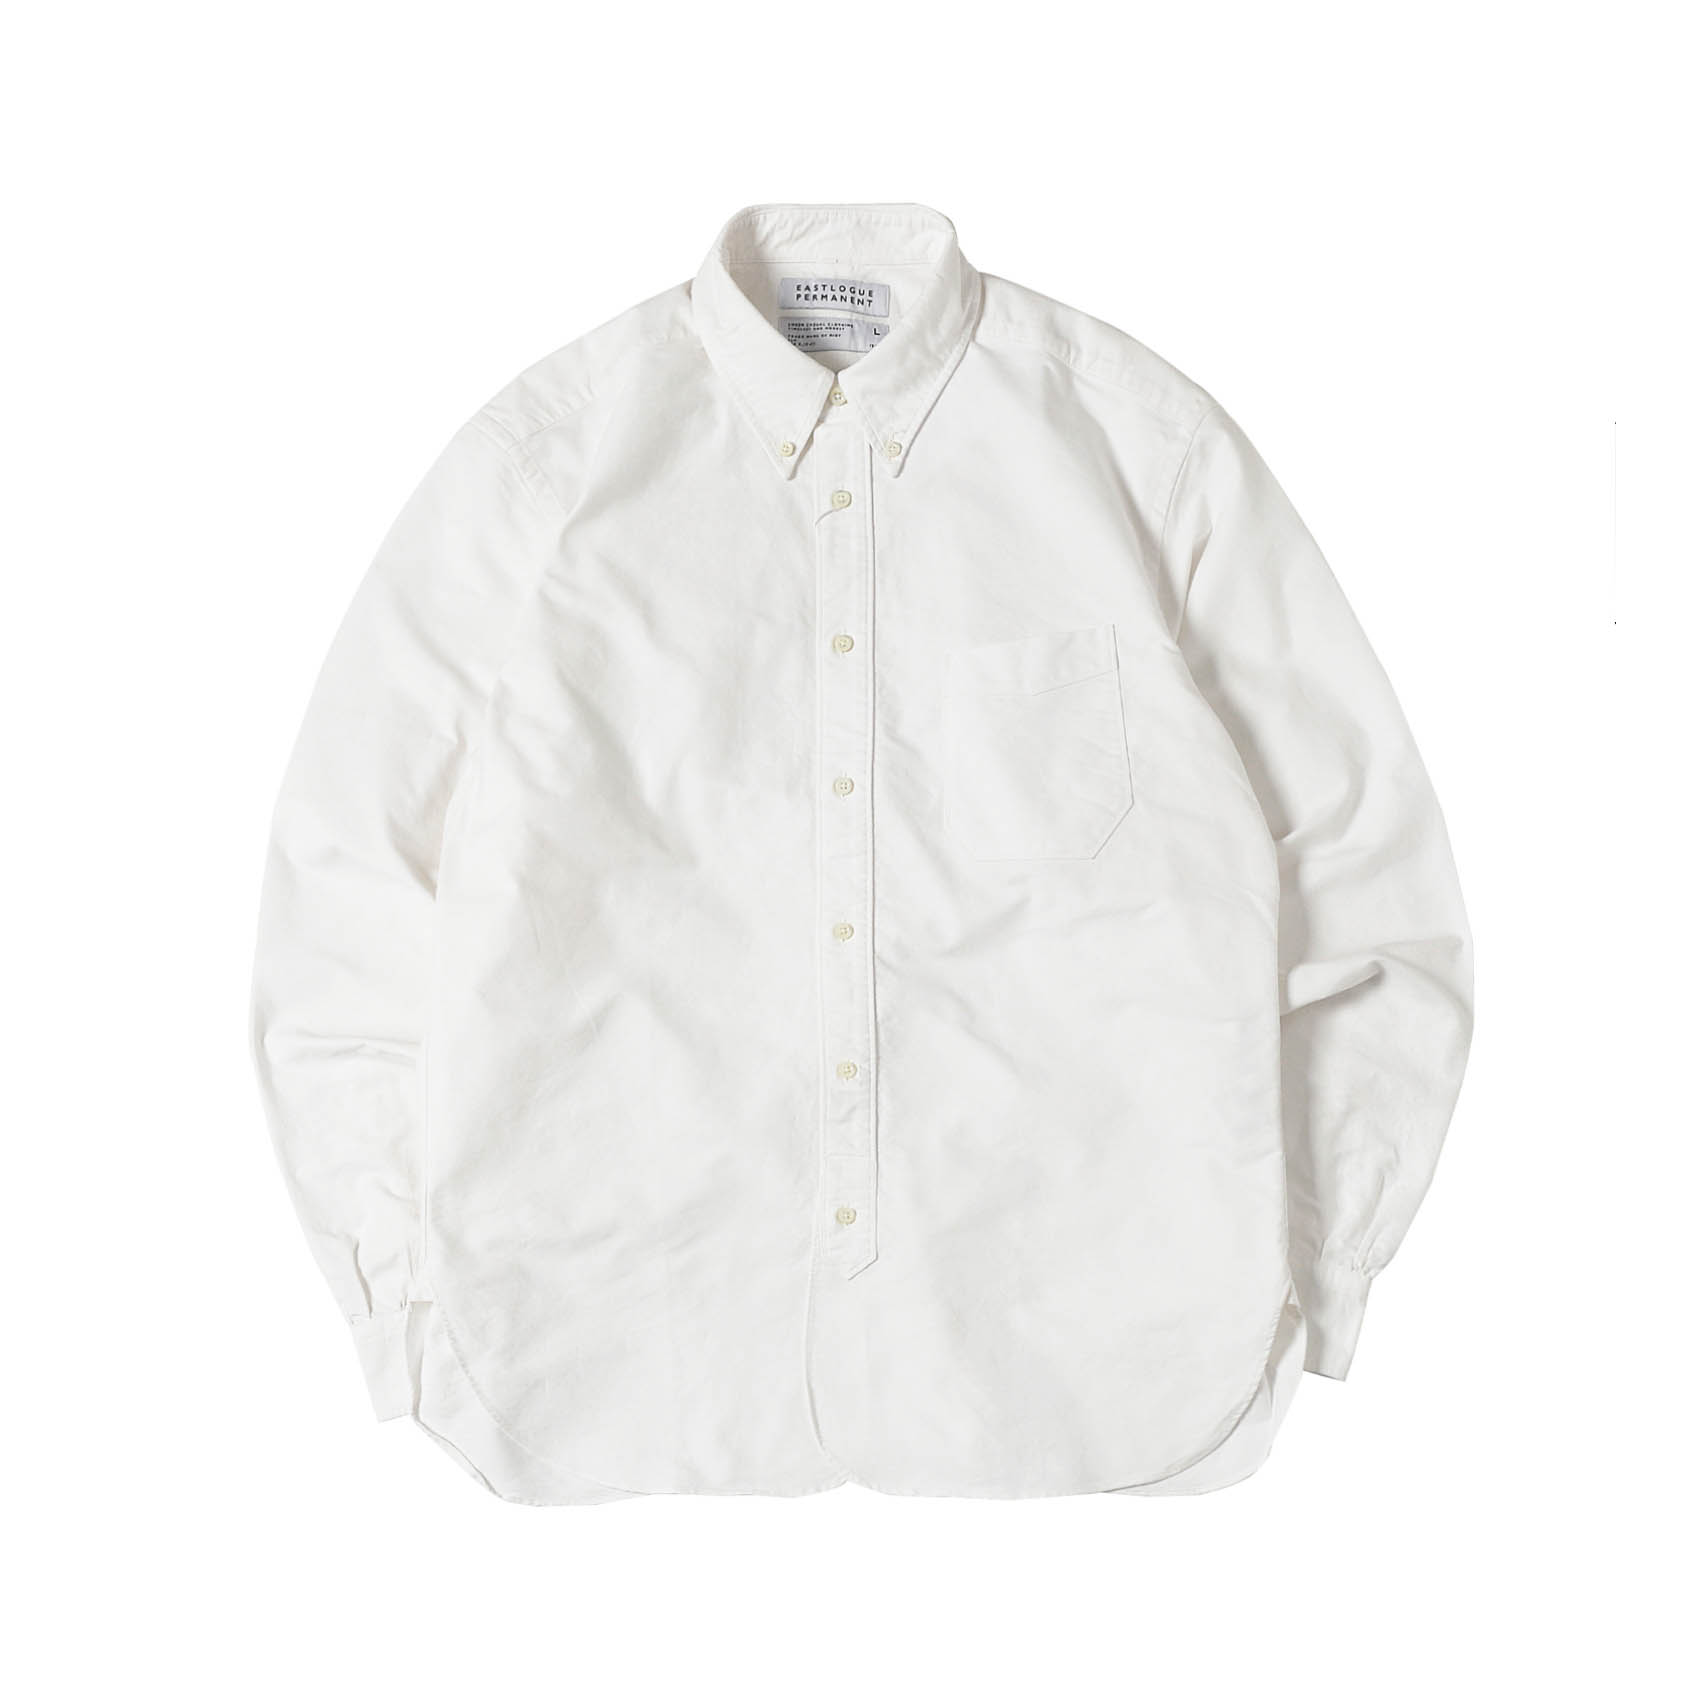 B.D REGULAR SHIRTS - WHITE OXFORD